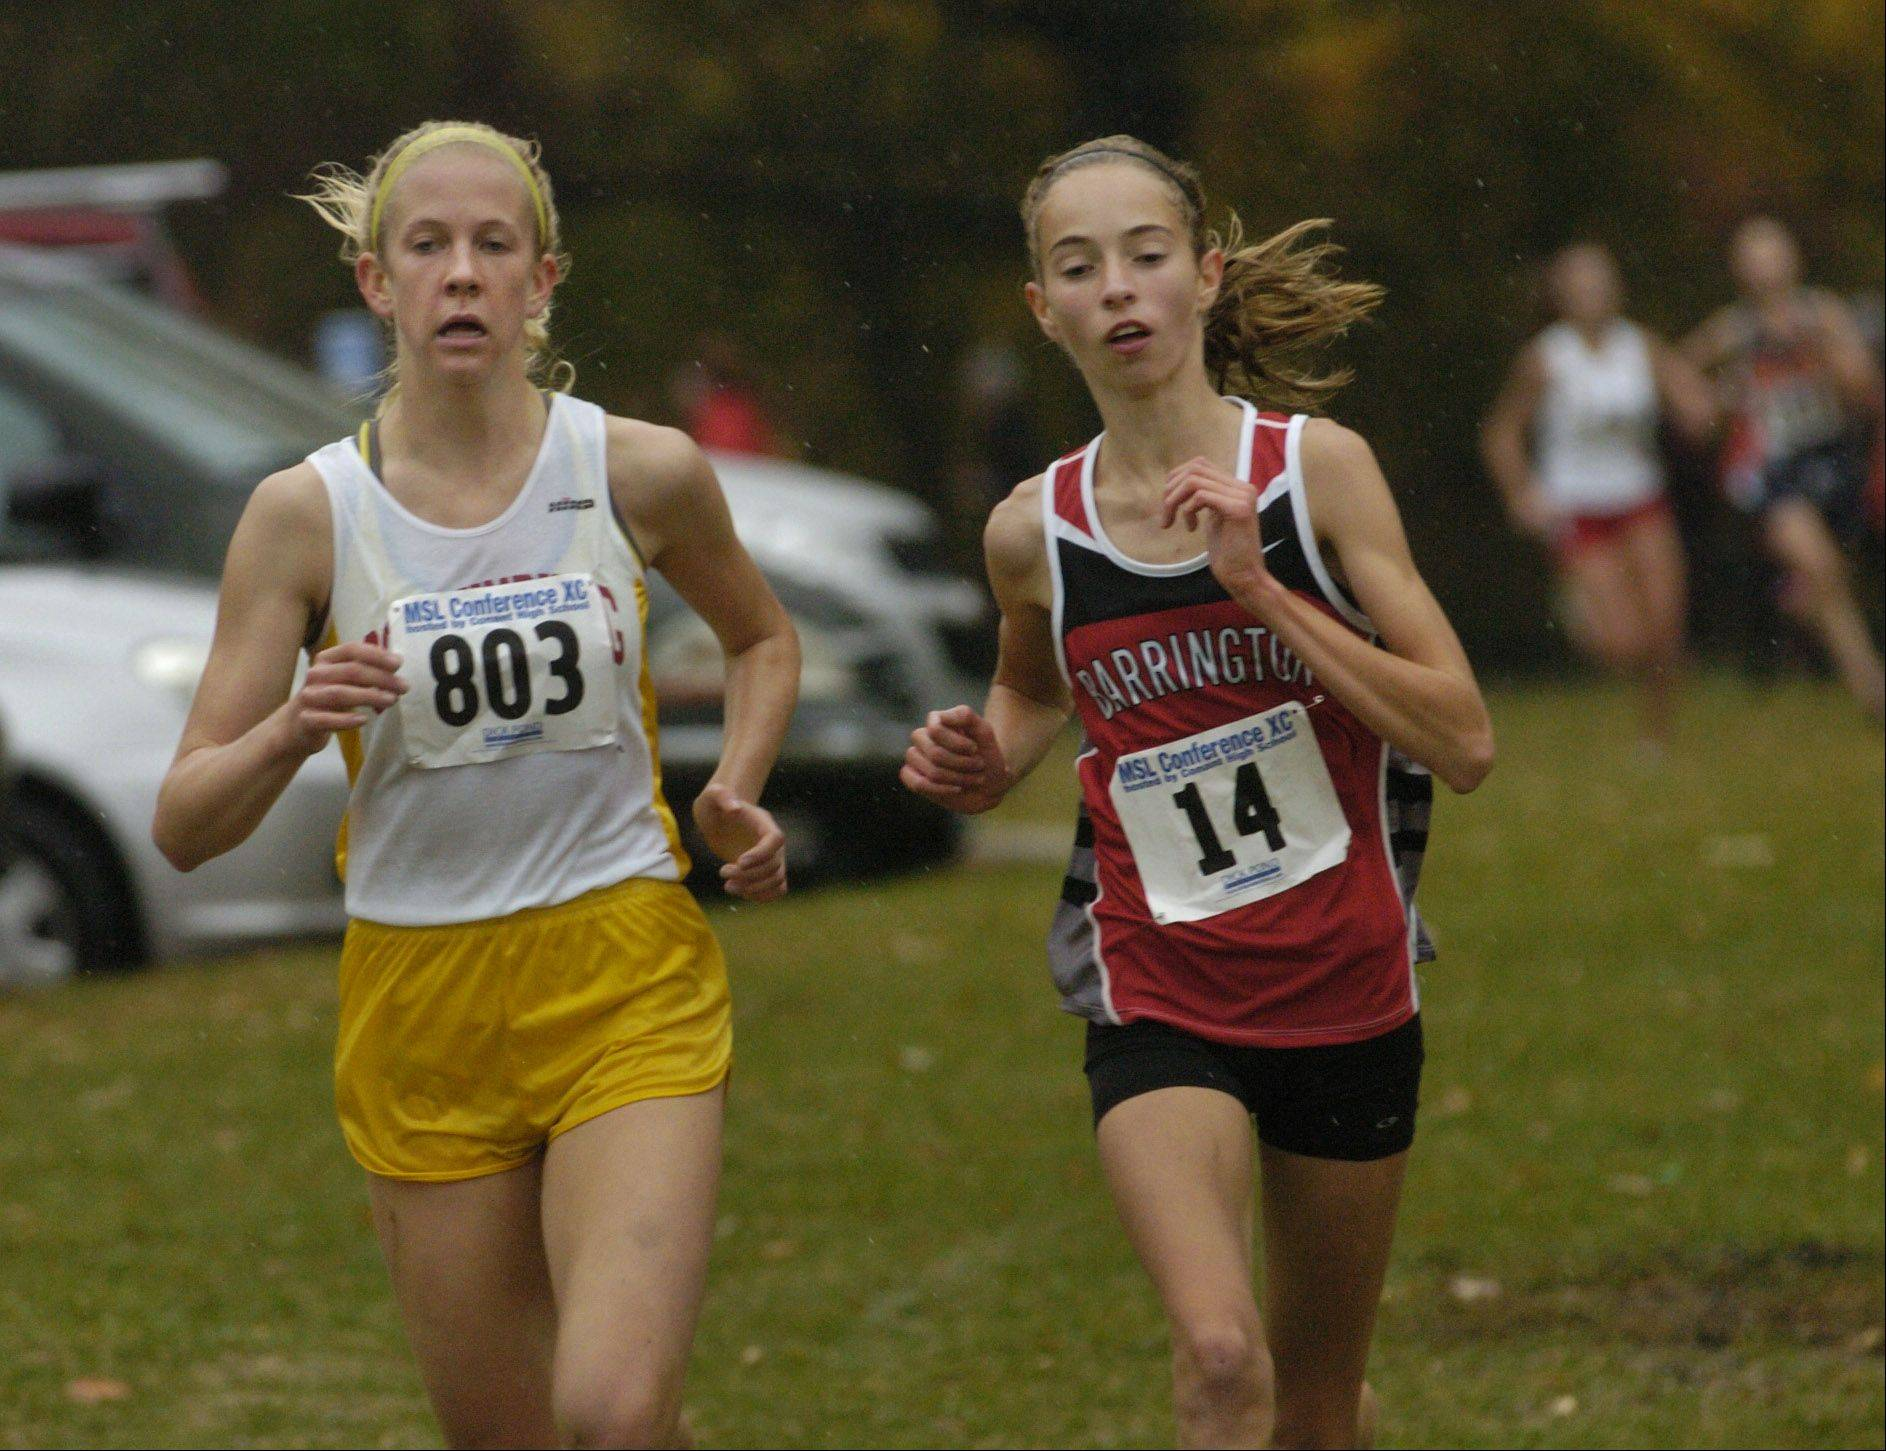 Caroline Kurdej of Schaumburg, left, and Barrington�s Lauren Conroy figure to be among the area�s top competitors this fall.